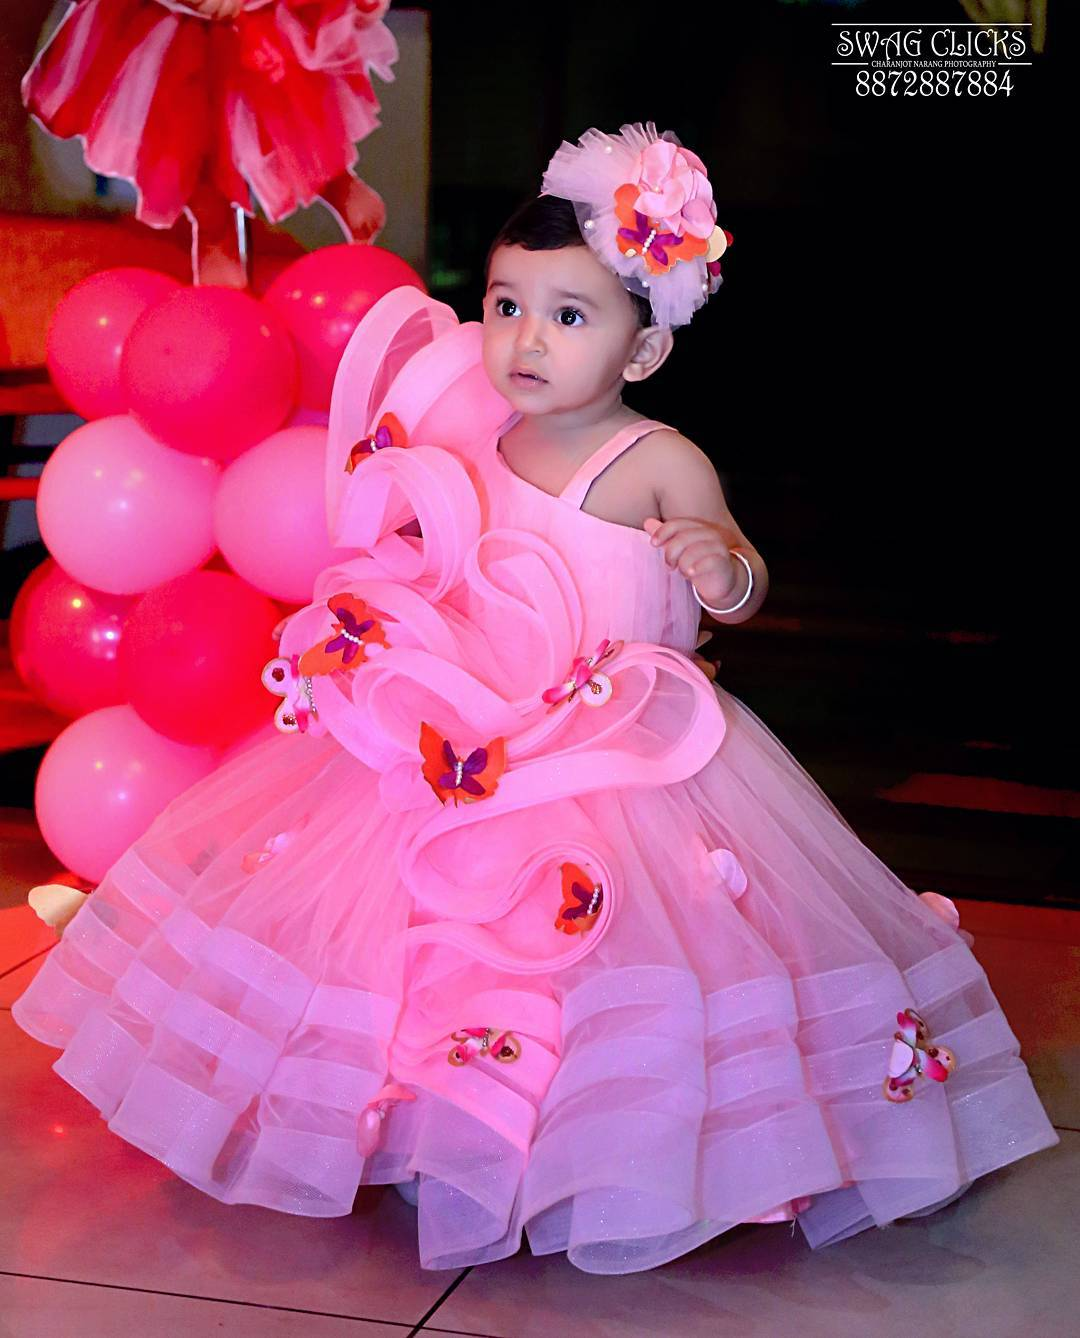 Baby Girl Princess Dress Ideas for Memorable Photoshoot - K6 Fashion